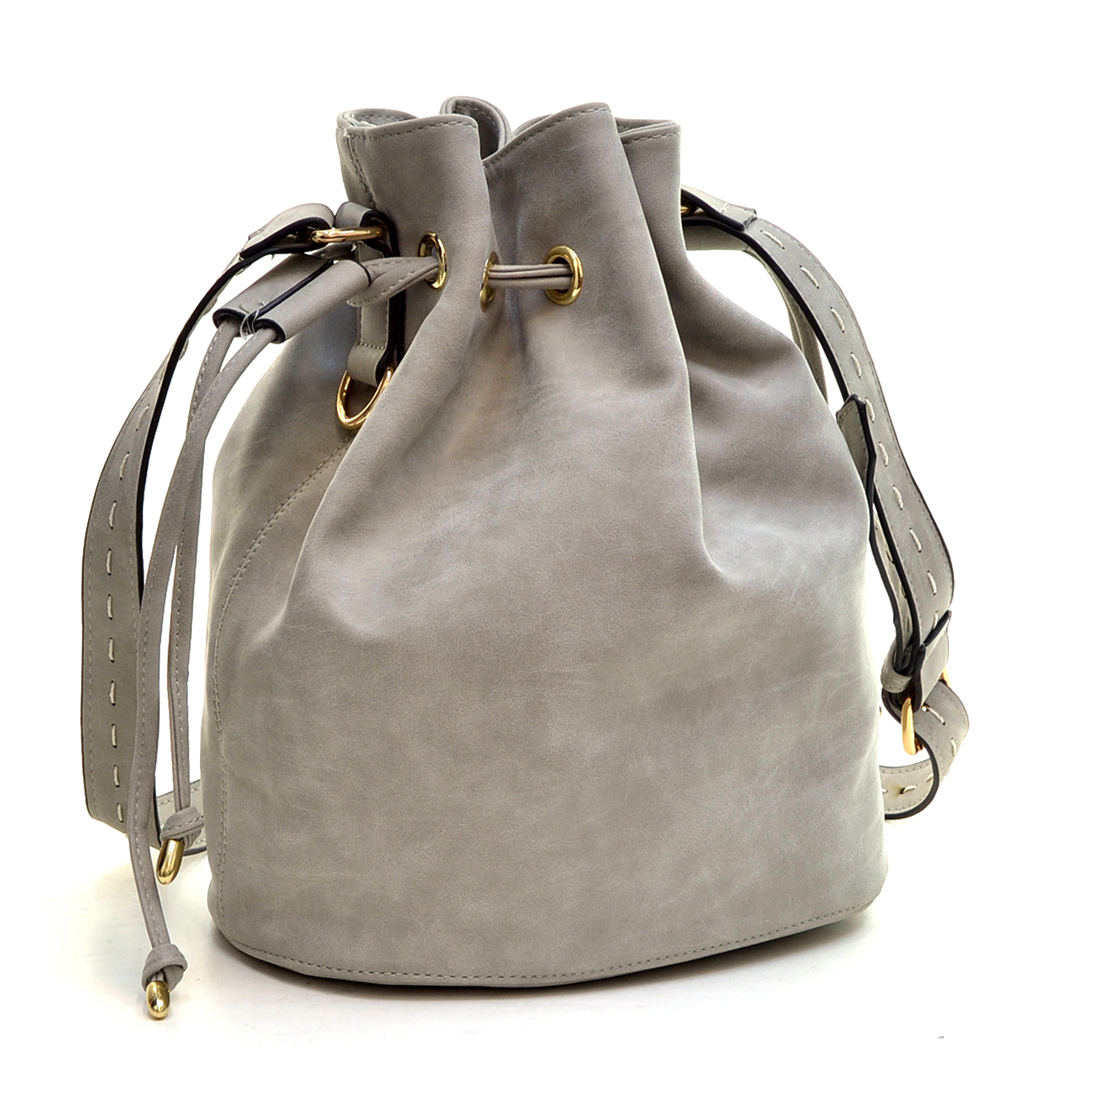 Distressed Faux Leather Drawstring Bucket Bag